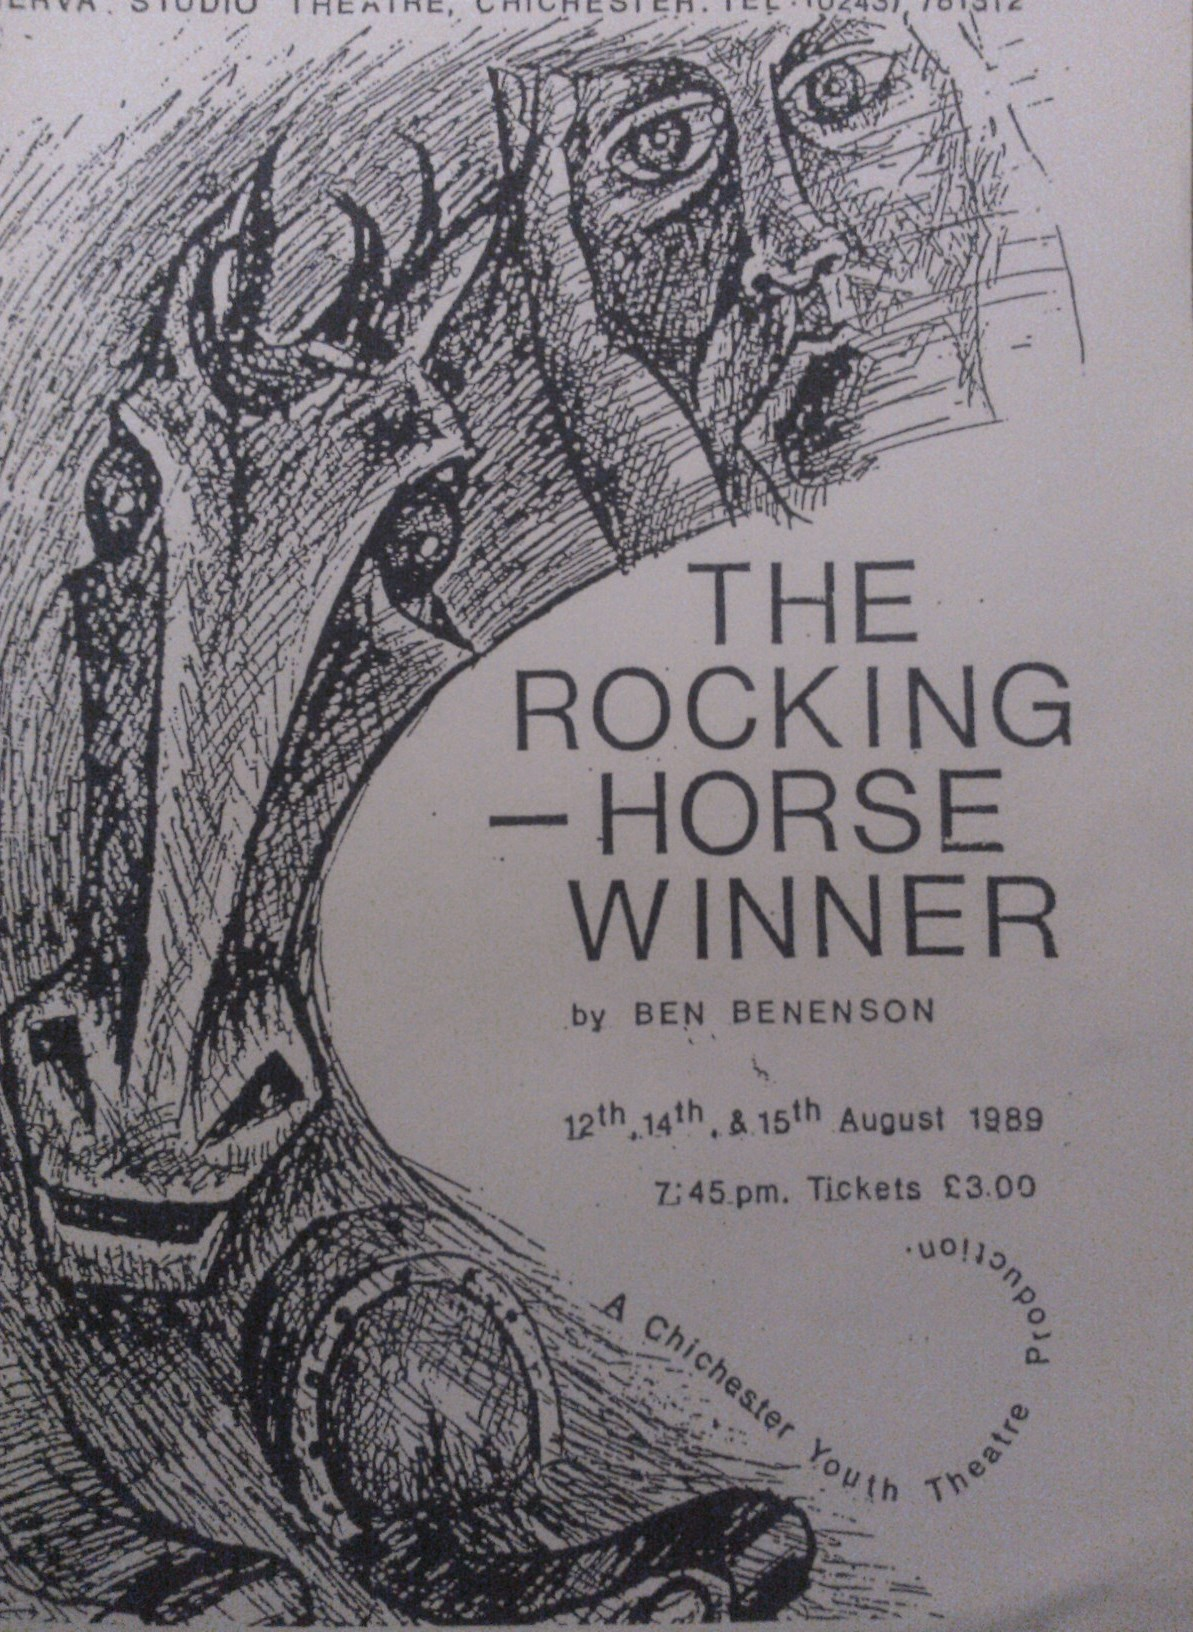 essay on rocking horse winner A careful reading of the text shows that there are two clear themes running side-by-side in this story we will discuss both in this paper the major and more.